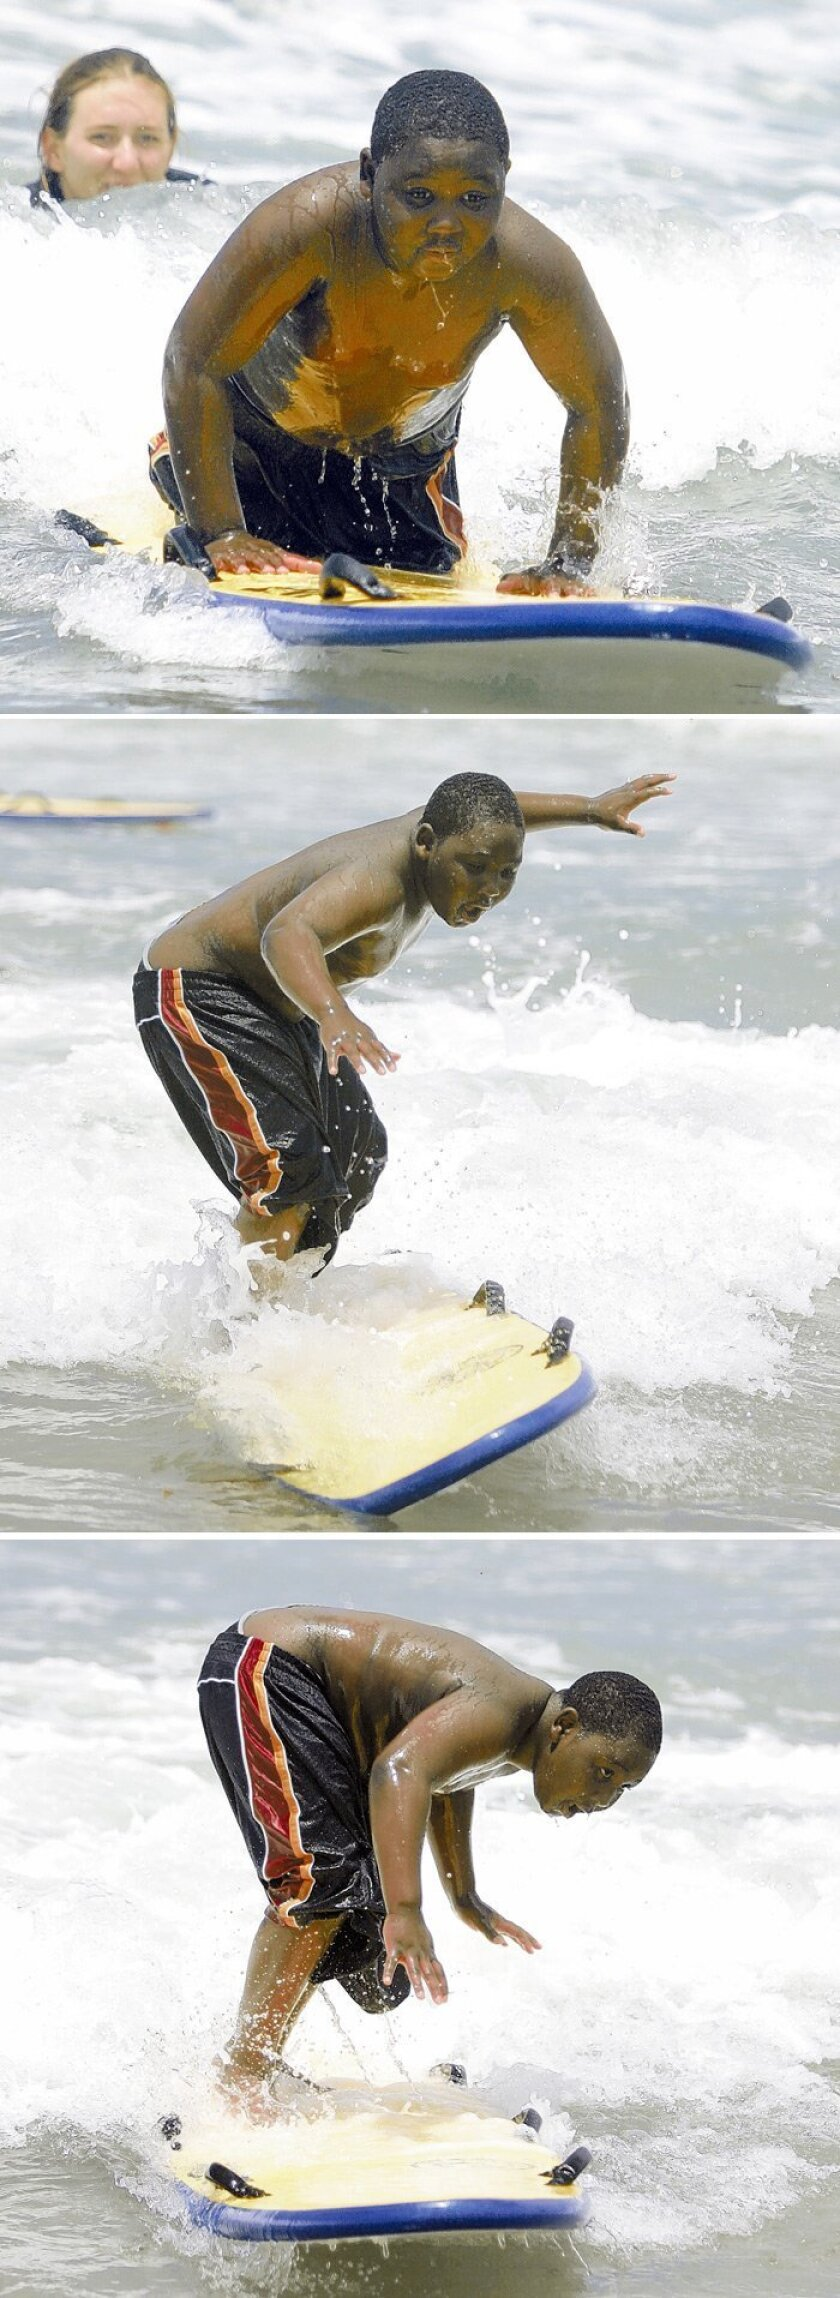 "With some help from San Diego lifeguard Emily Nanninga, Tashawn Lucas, 9, was able to stand up on a surfboard Friday at South Mission Beach. More than 300 children from King-Chavez school participated in the ""Bridge to the Beach"" program sponsored by the San Diego Junior Lifeguard Foundation."